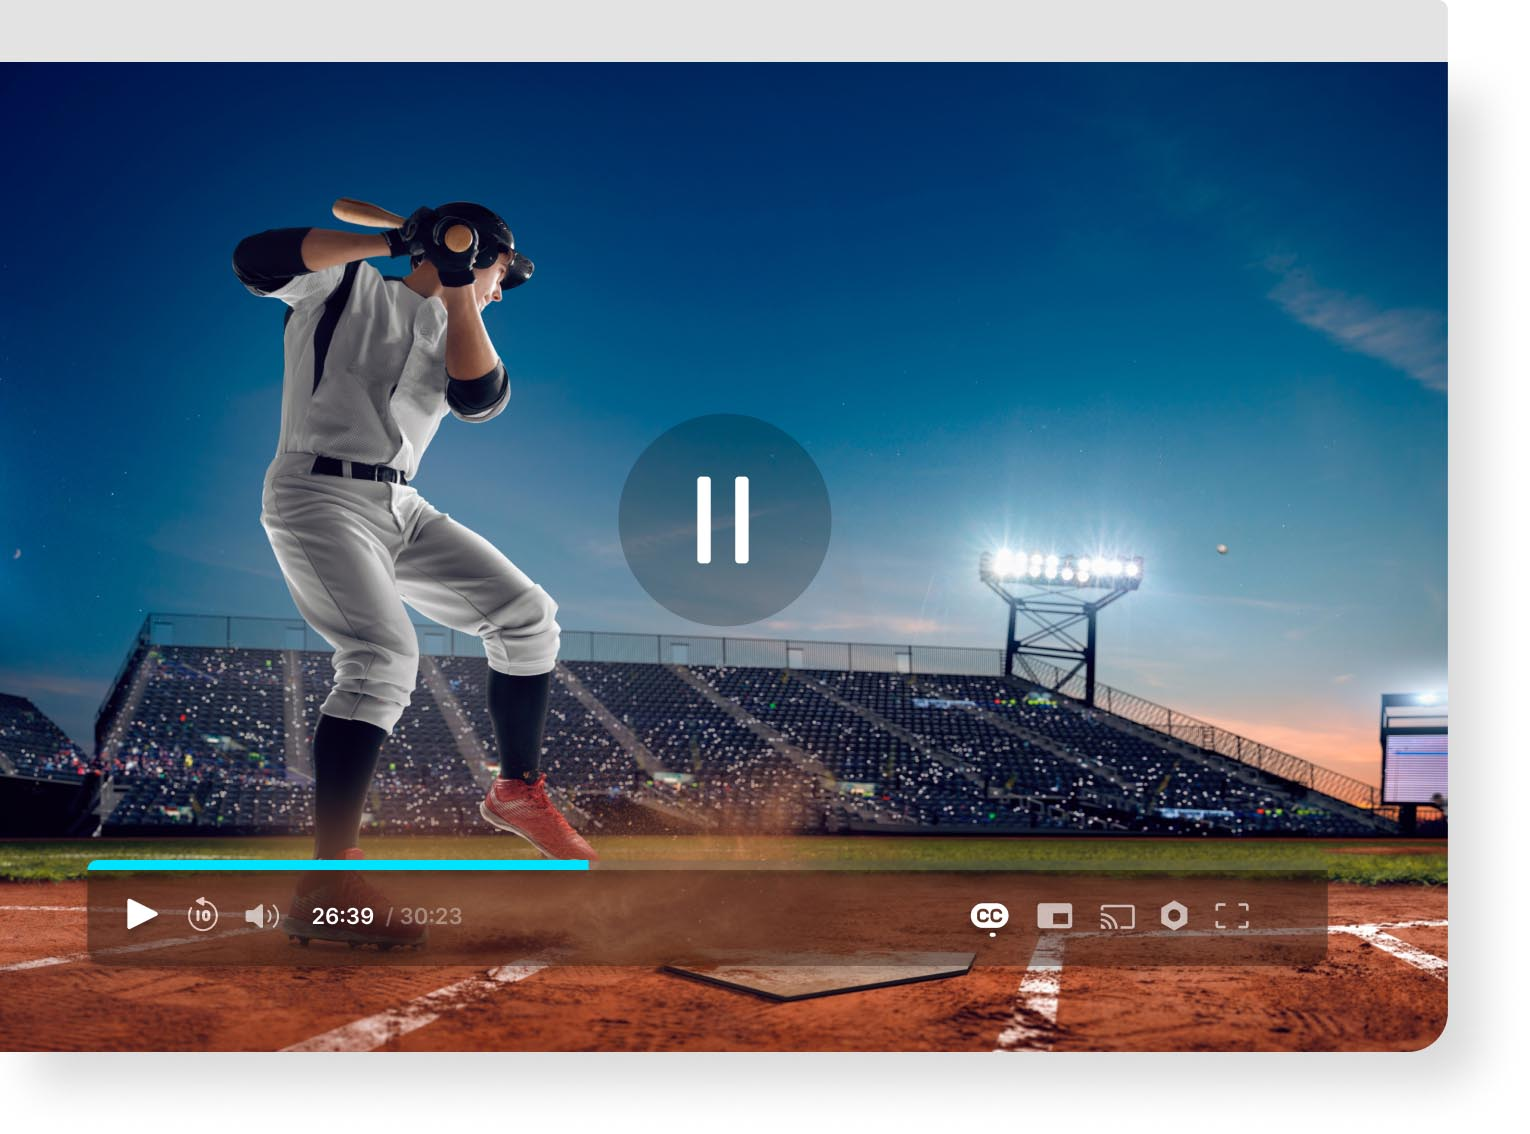 HTML5 video player for VOD and OTT services